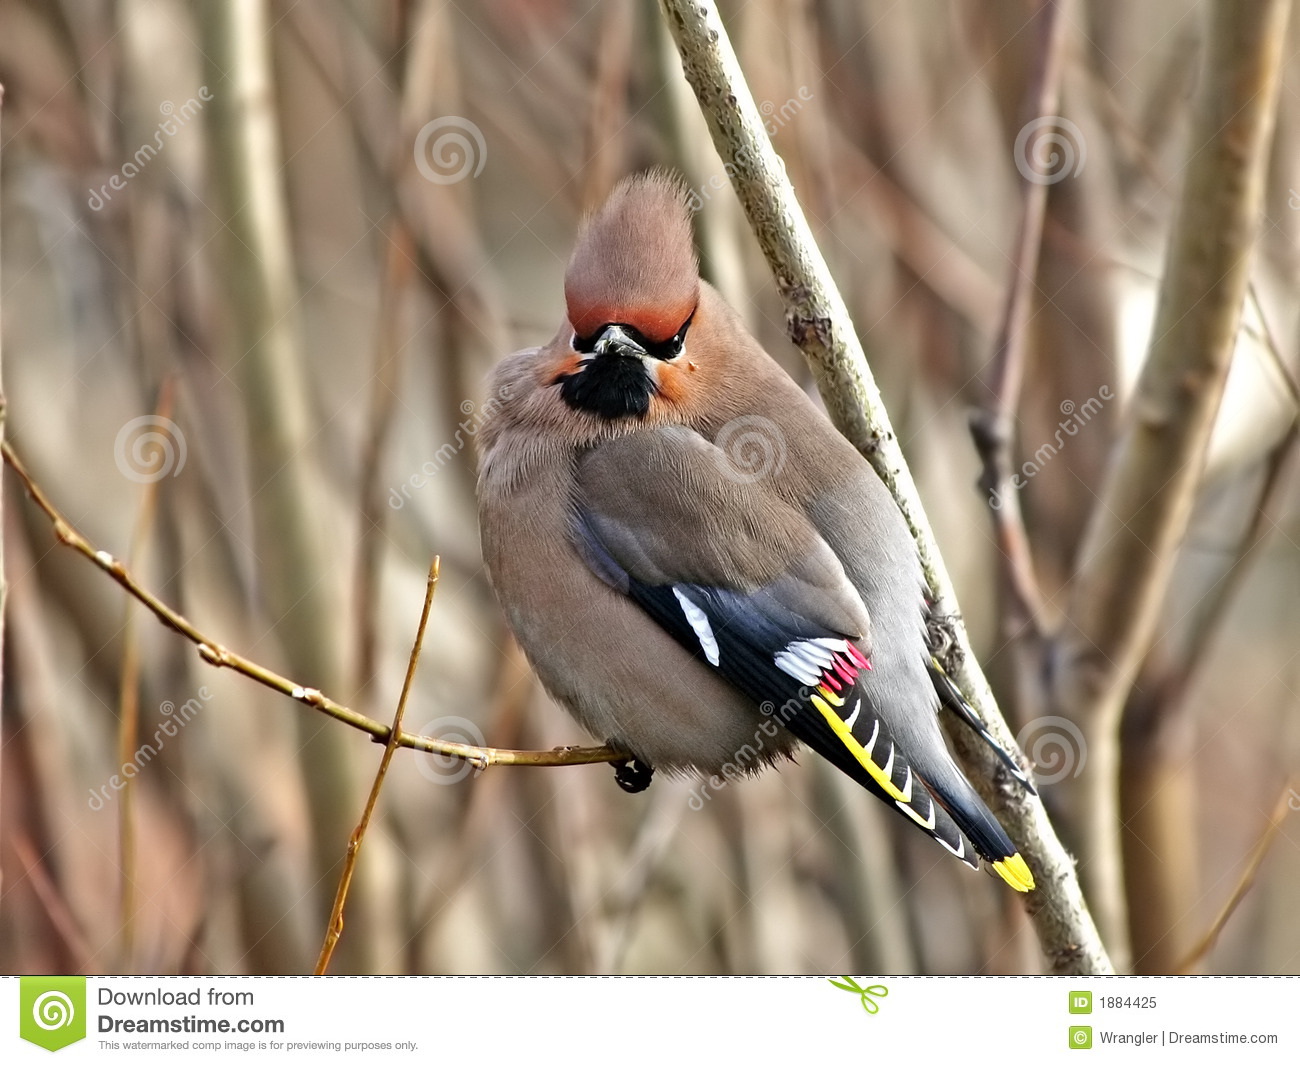 Guzzled thick waxwing.